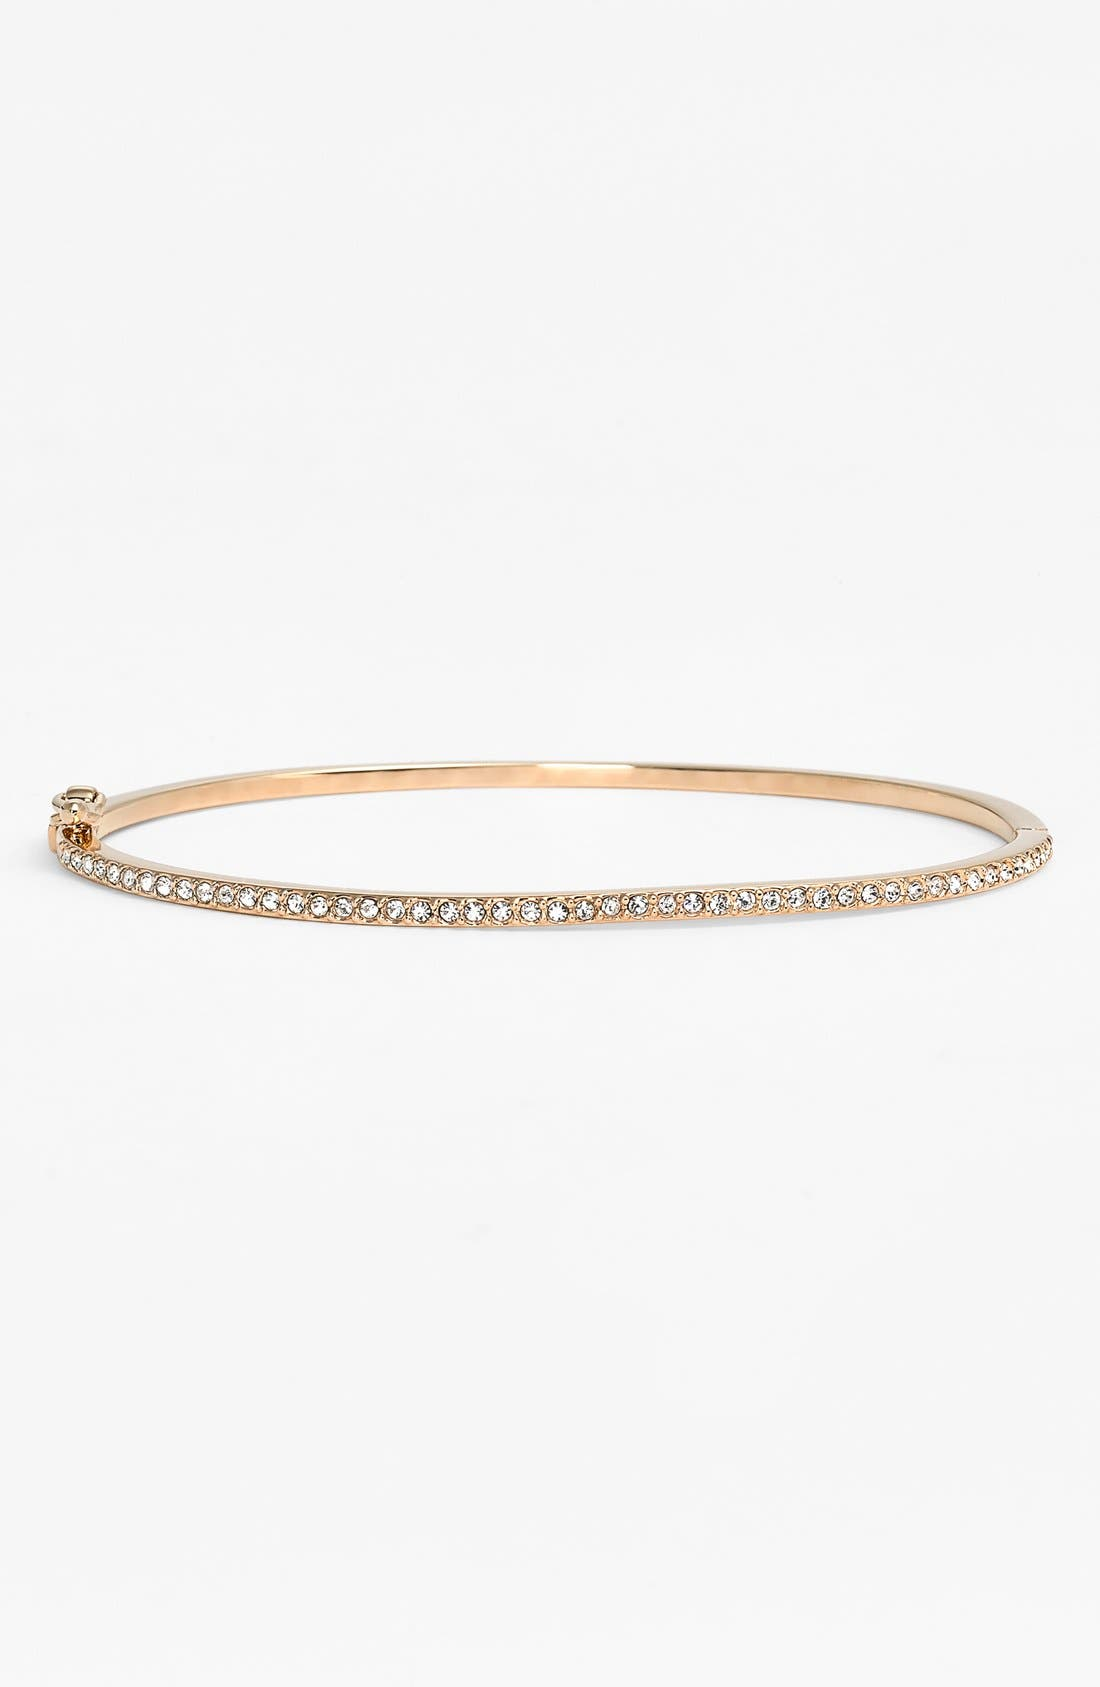 JUDITH JACK Boxed Skinny Pavé Hinge Bangle